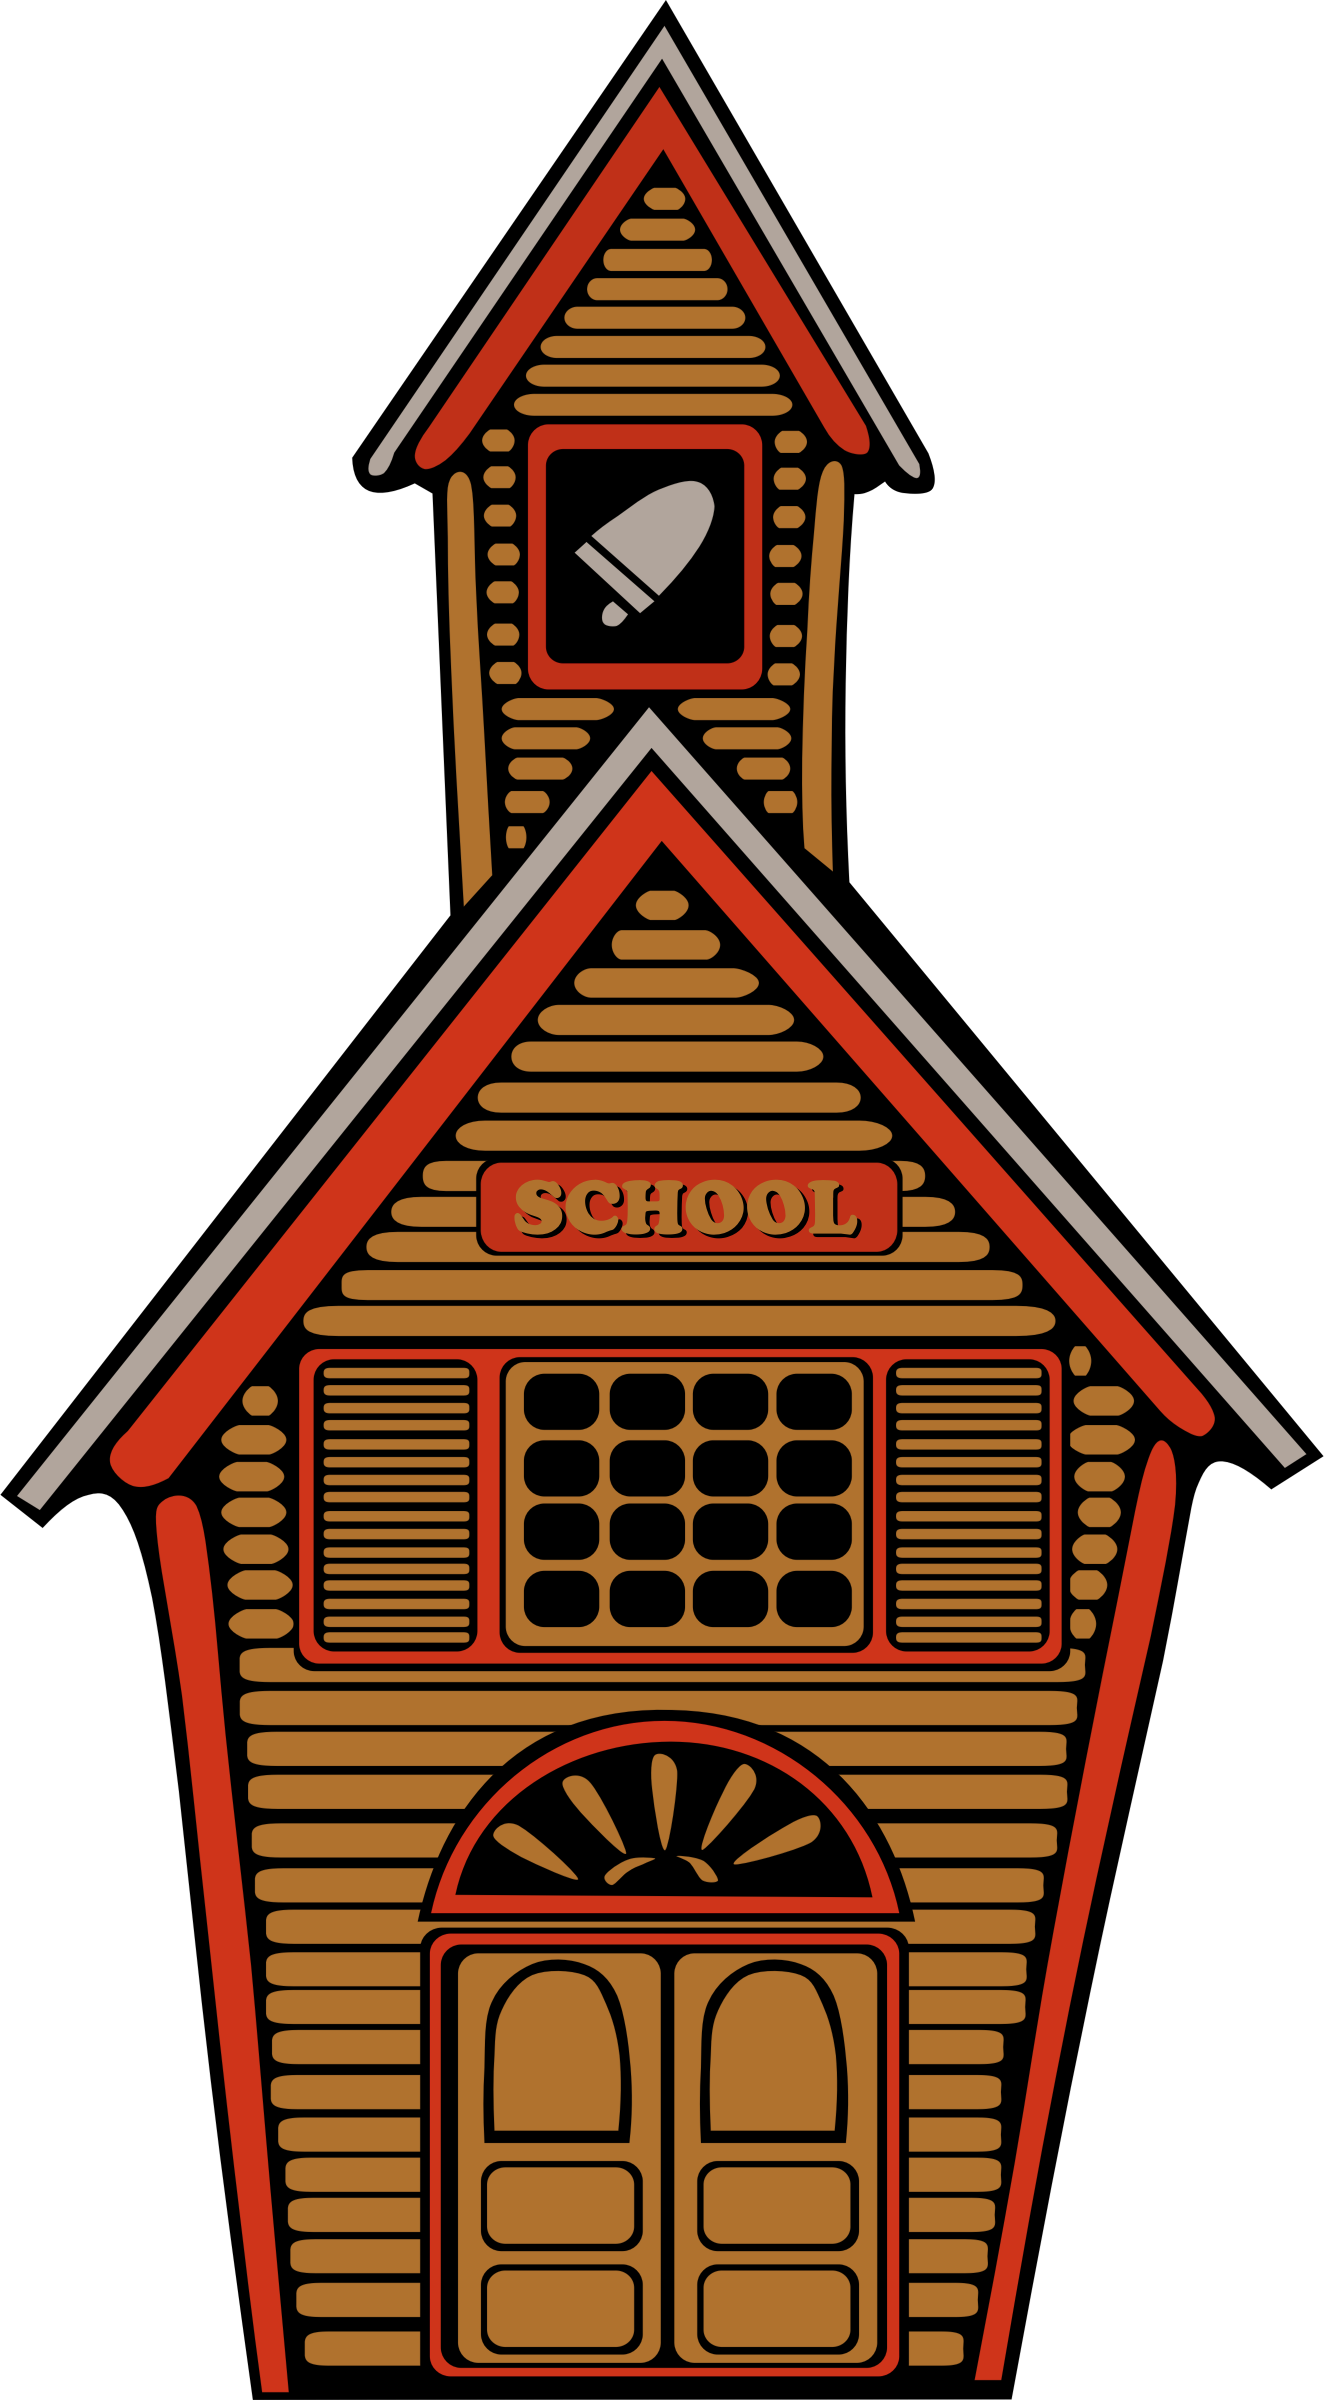 Tower clipart school. Country big image png